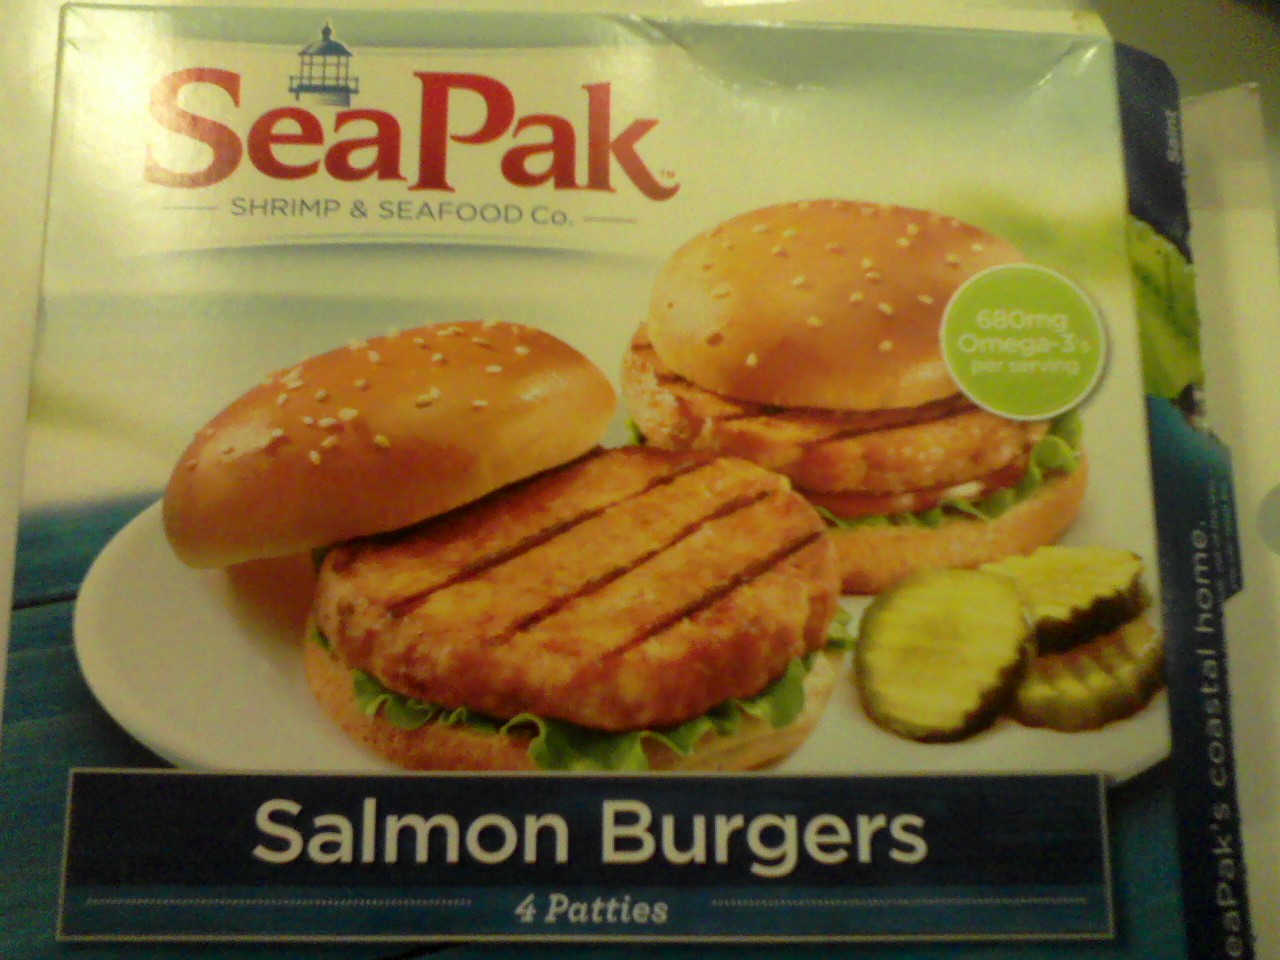 CT on a budget: Product review: Sea Pack salmon burgers